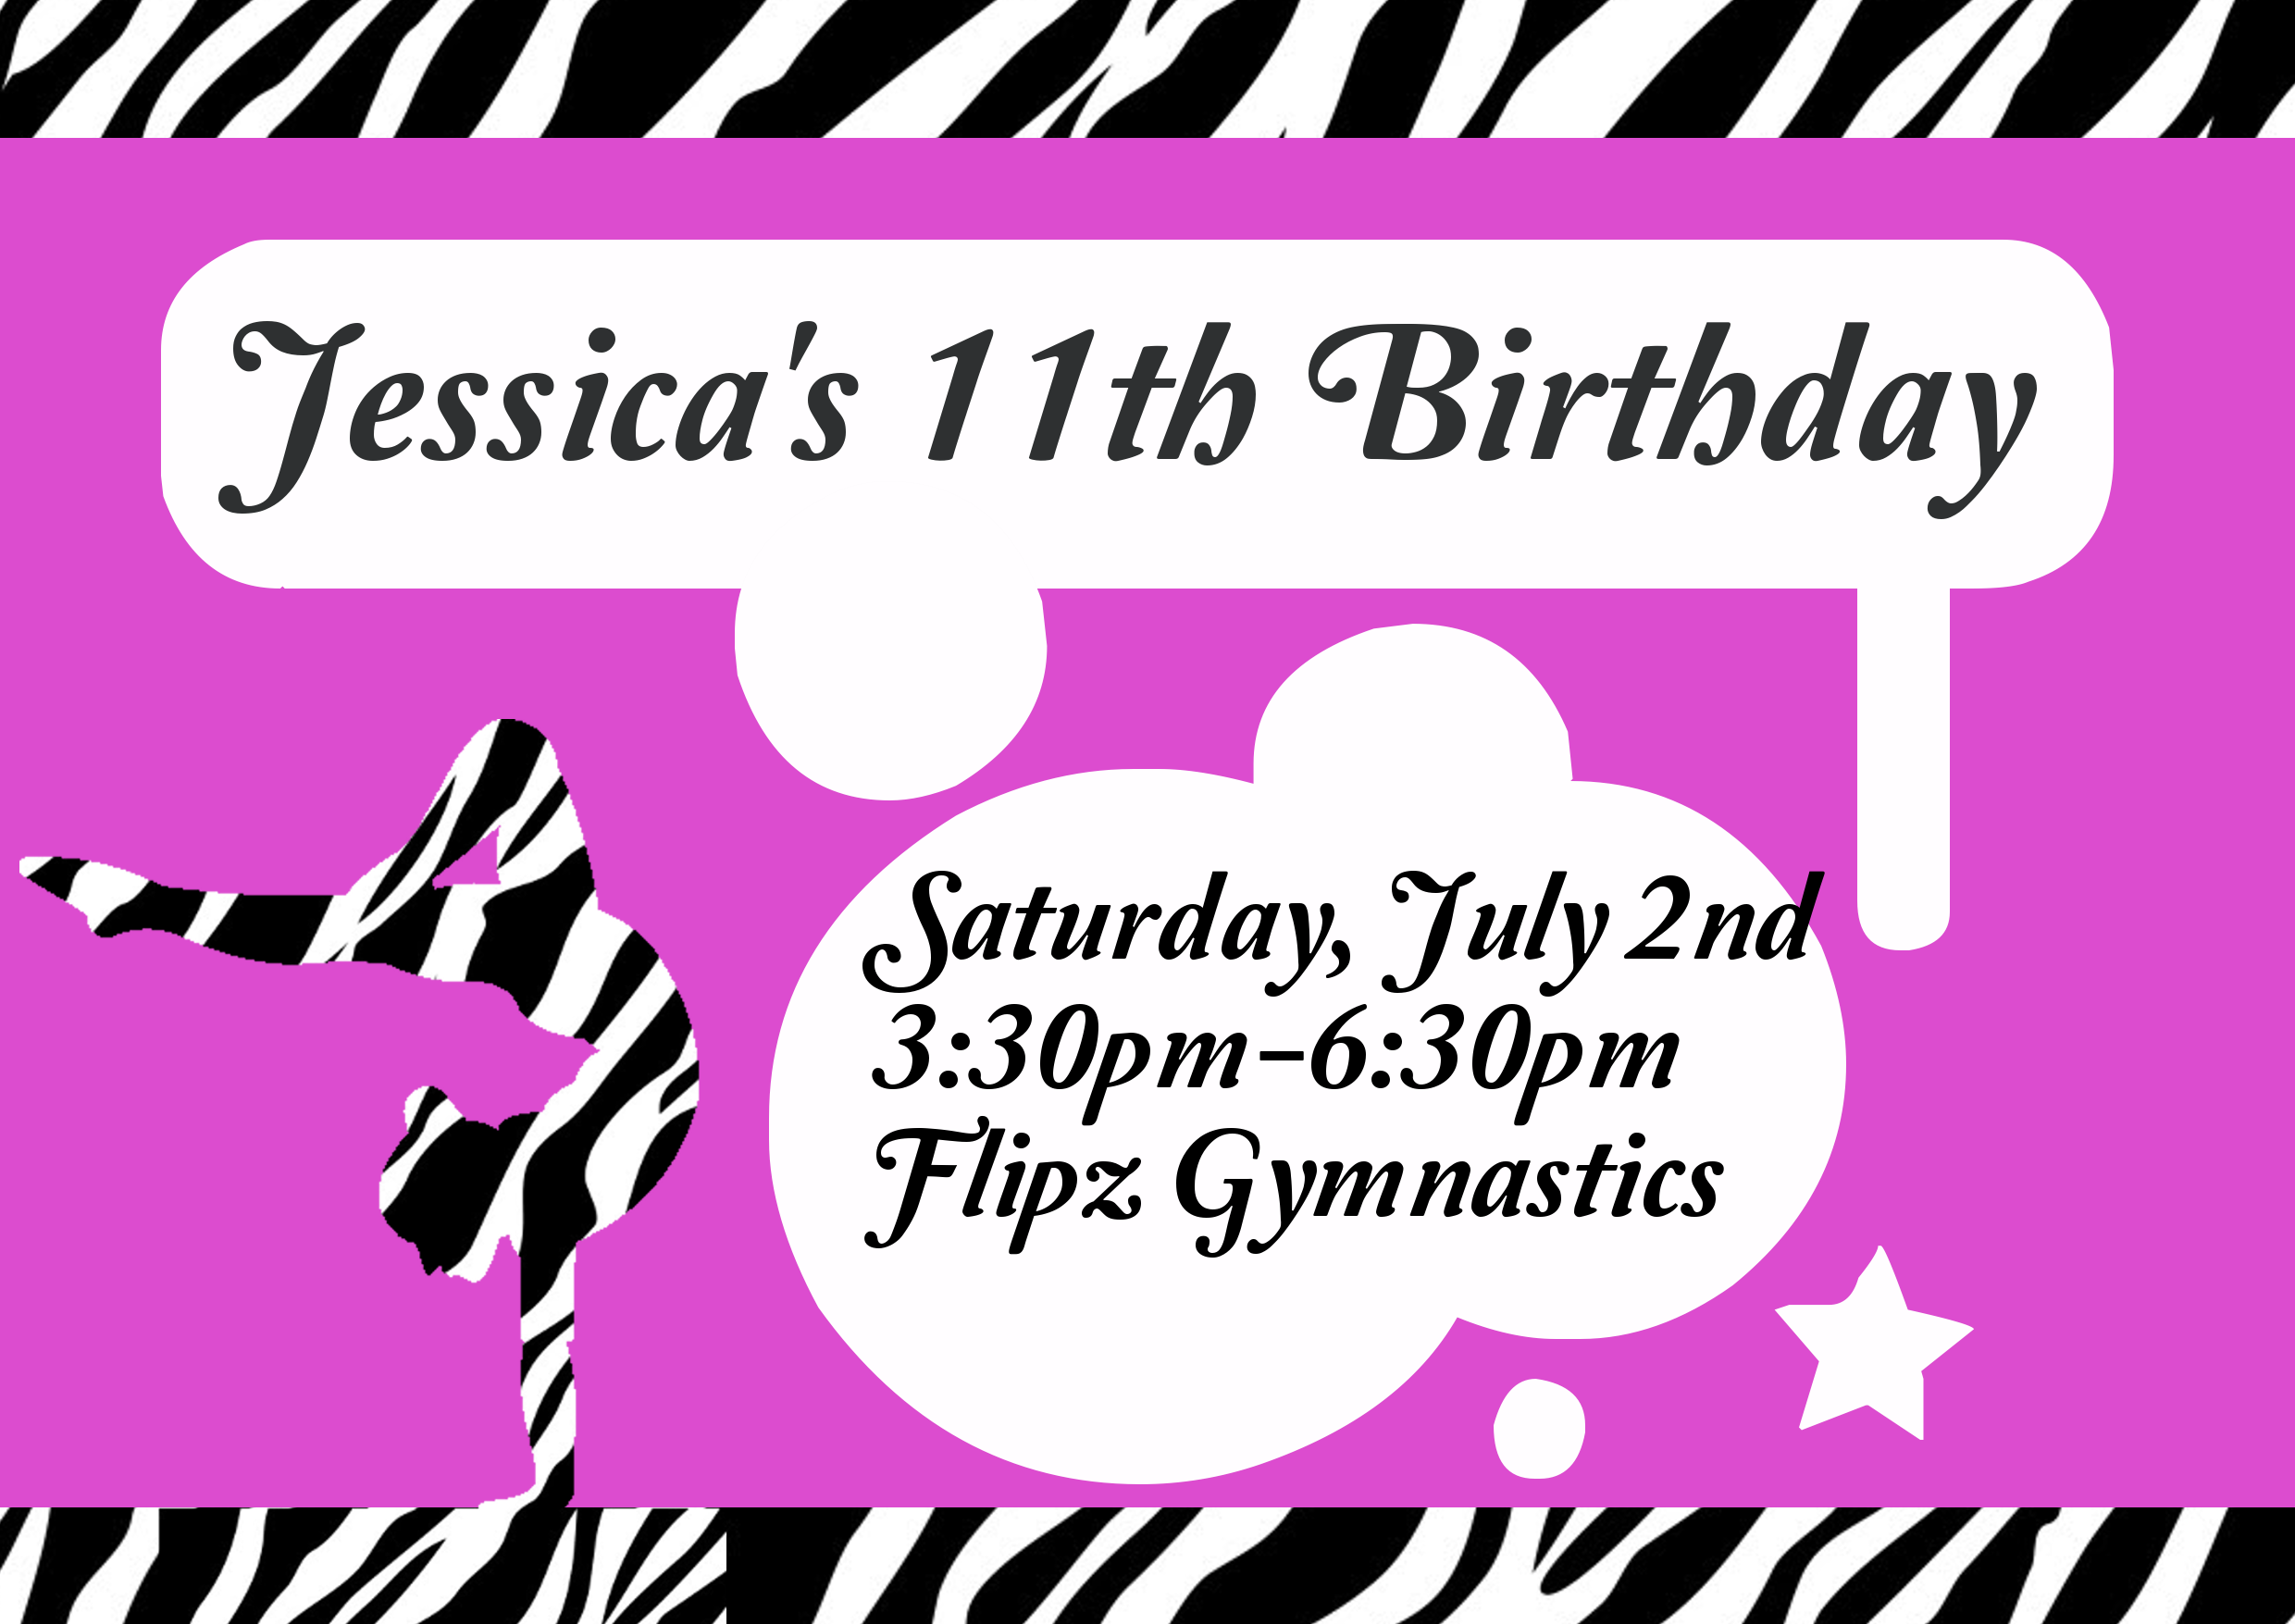 Cute Gymnastics Birthday Party Invite & more at this website ...